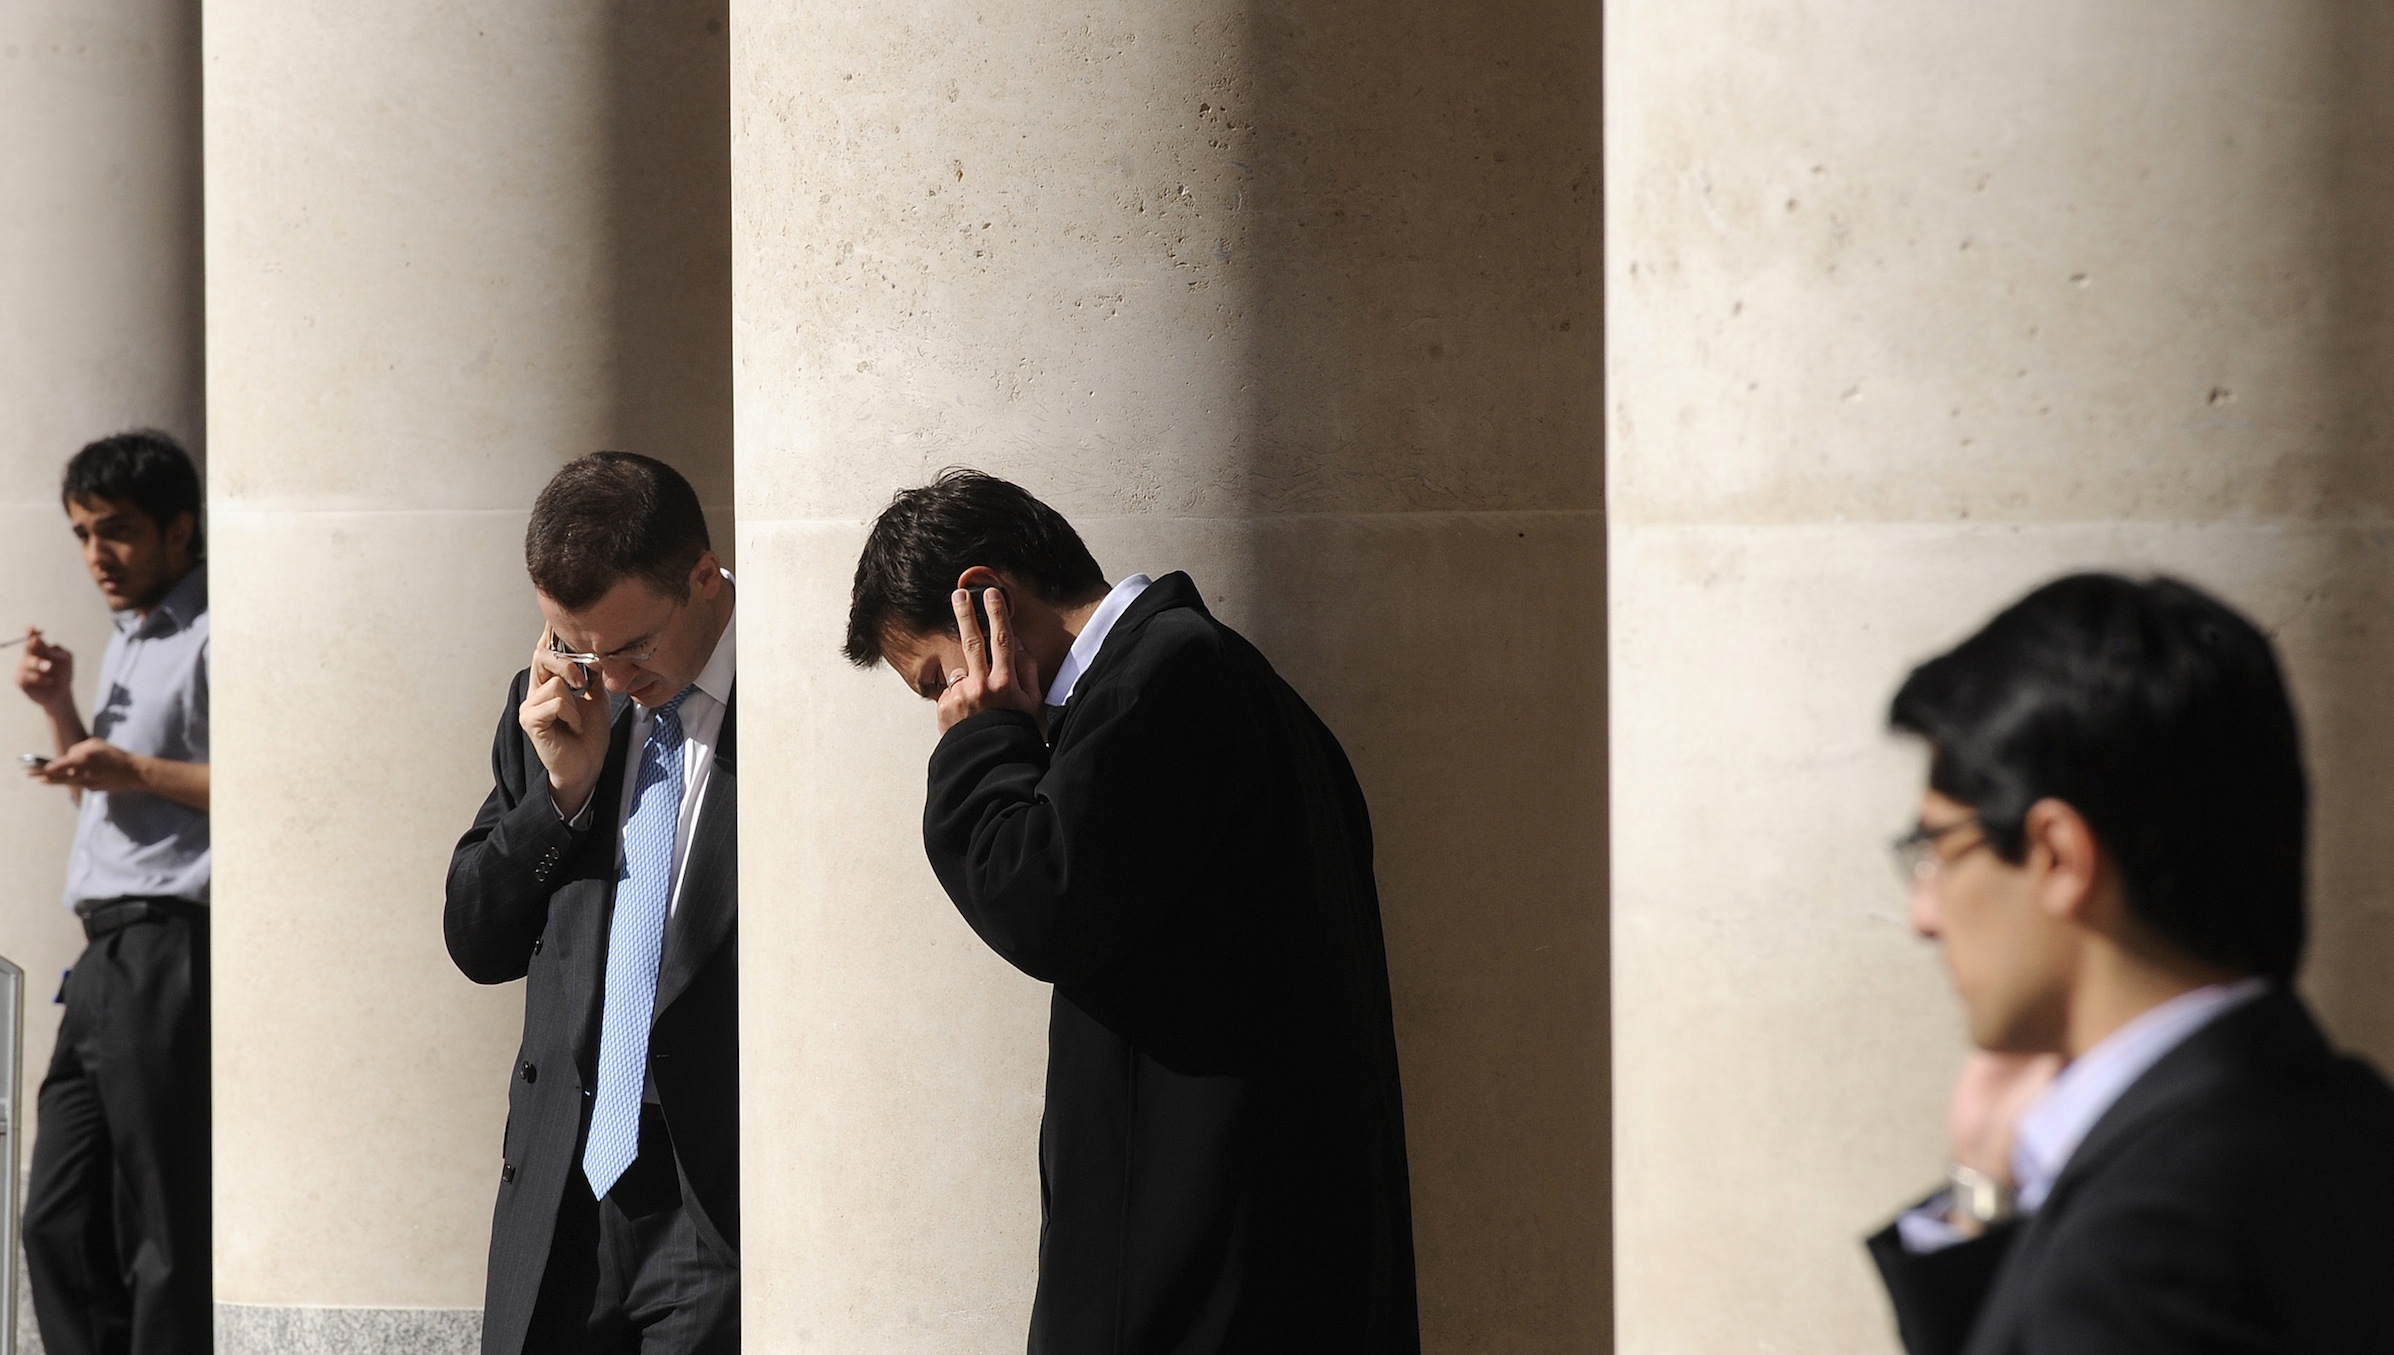 City workers make phone calls outside the London Stock Exchange in Paternoster Square in the City of London at lunchtime